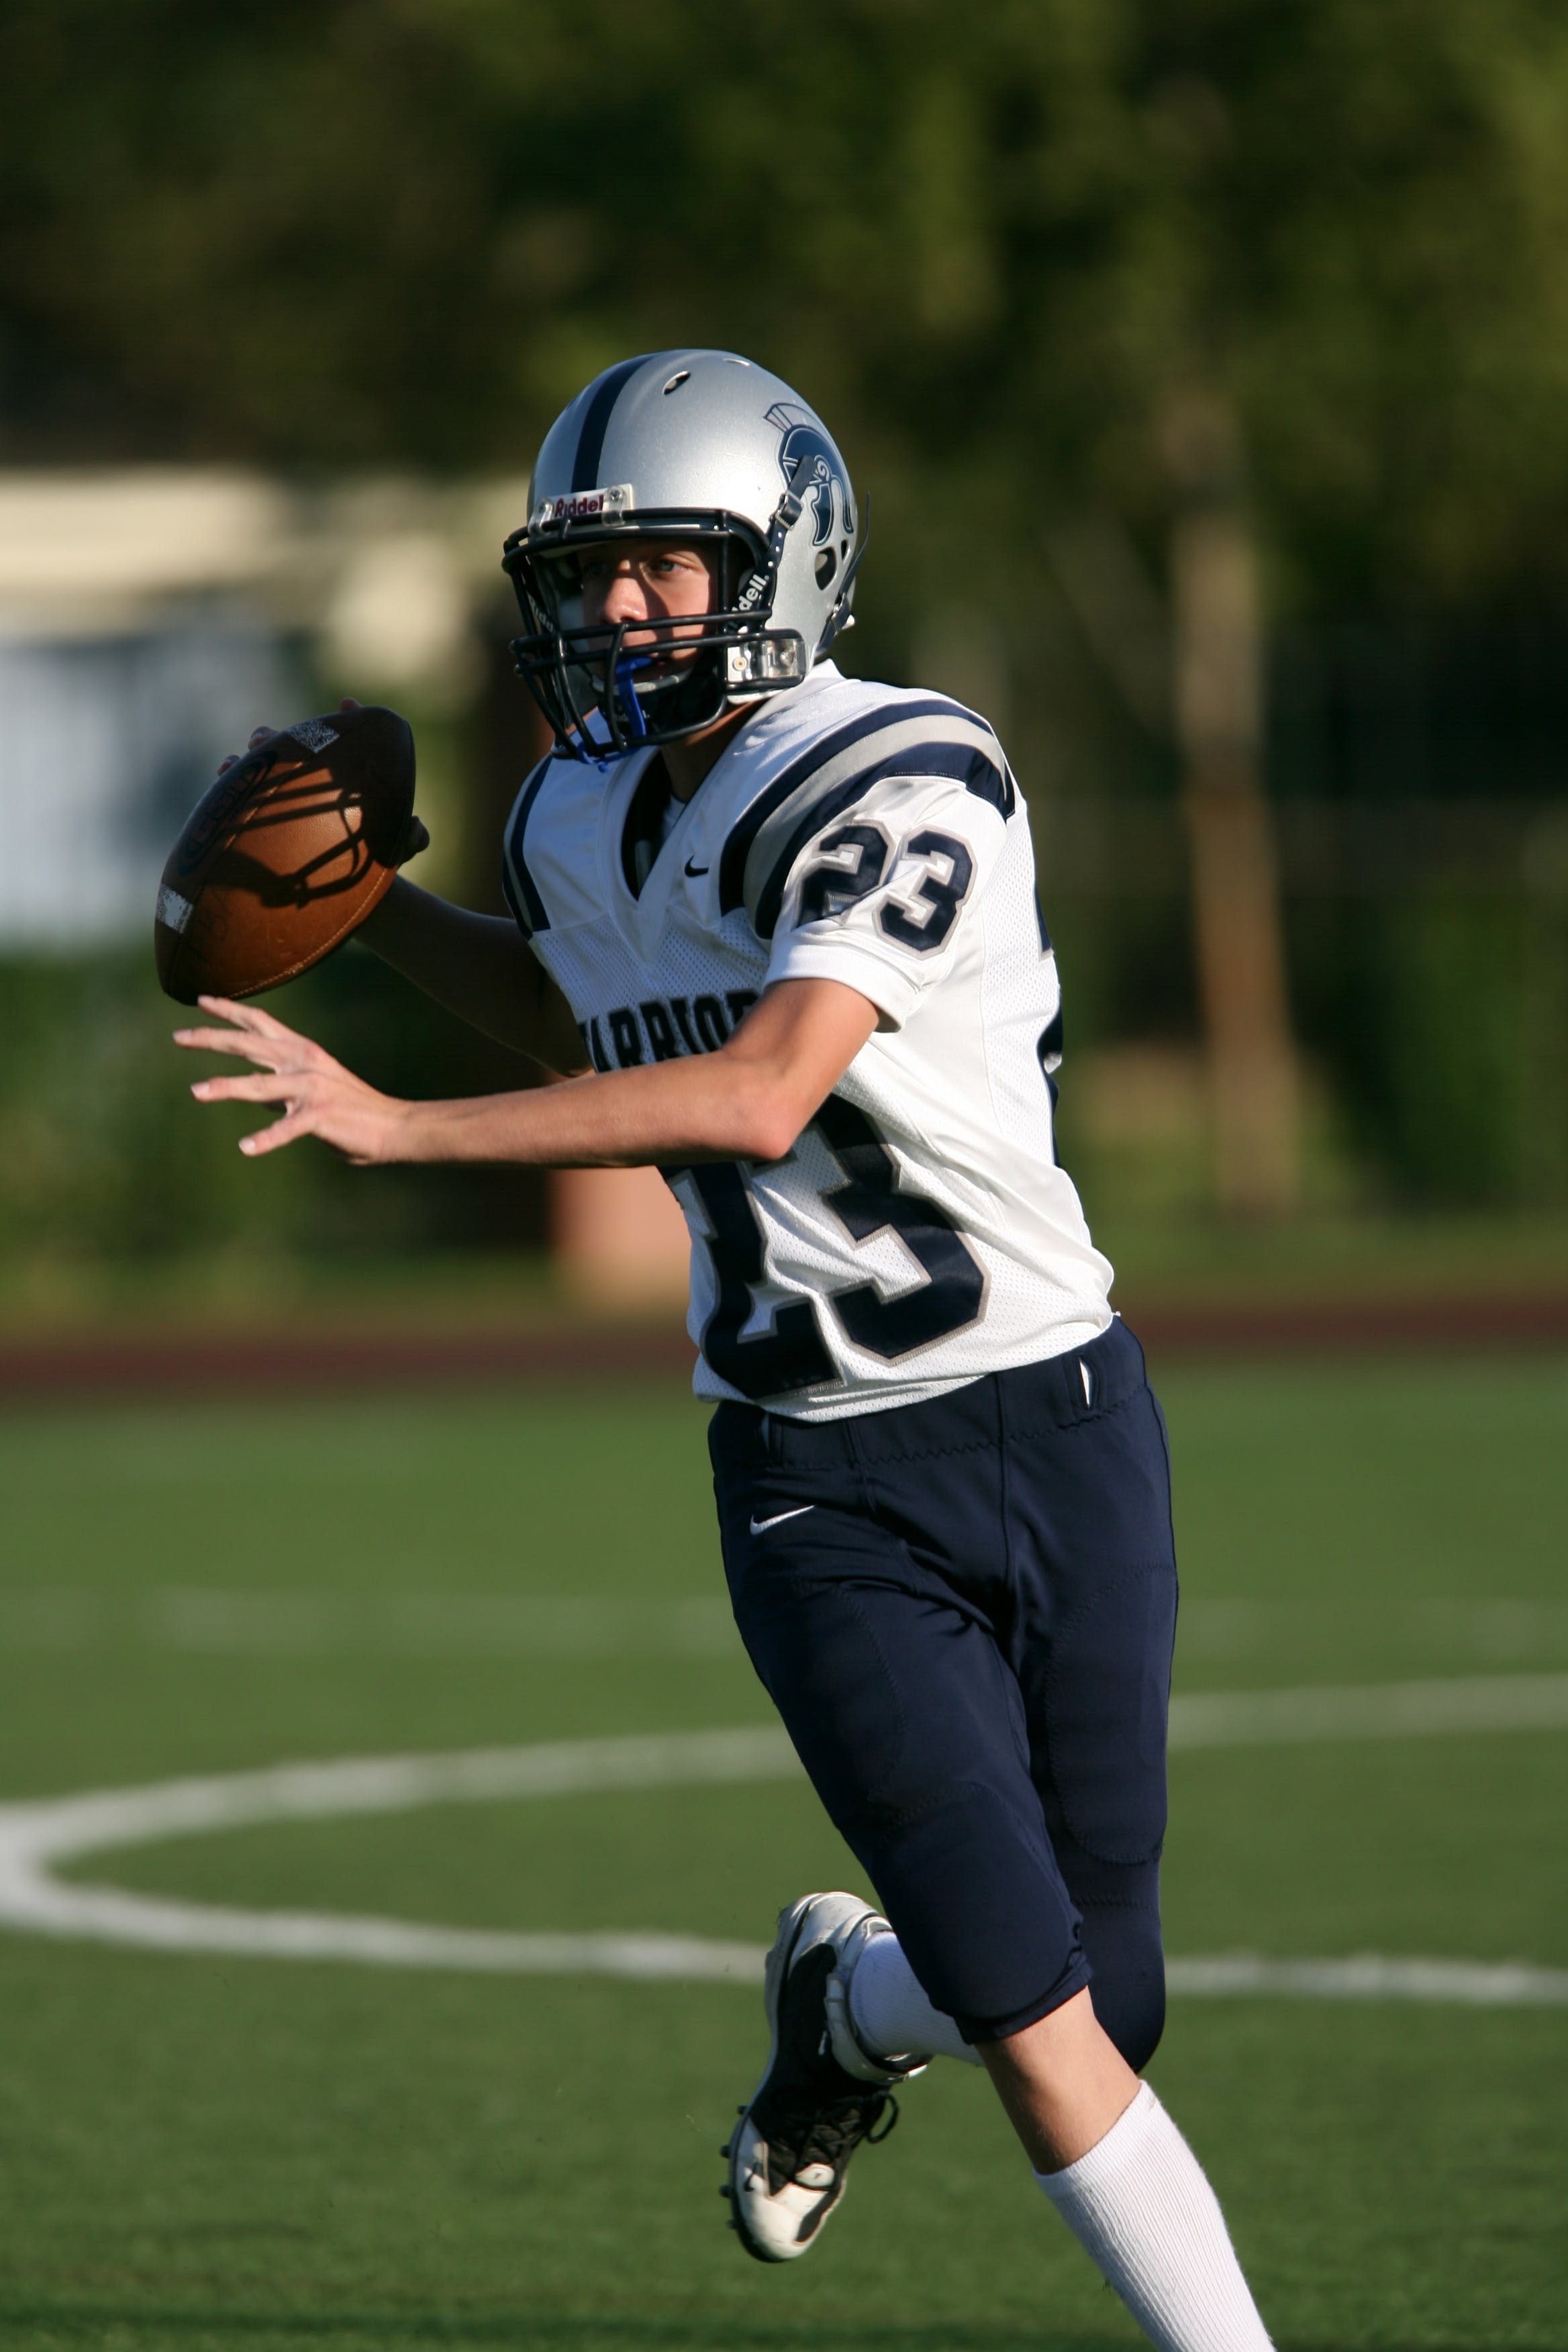 Kostenloses Stock Foto zu action, american football, athlet, ball